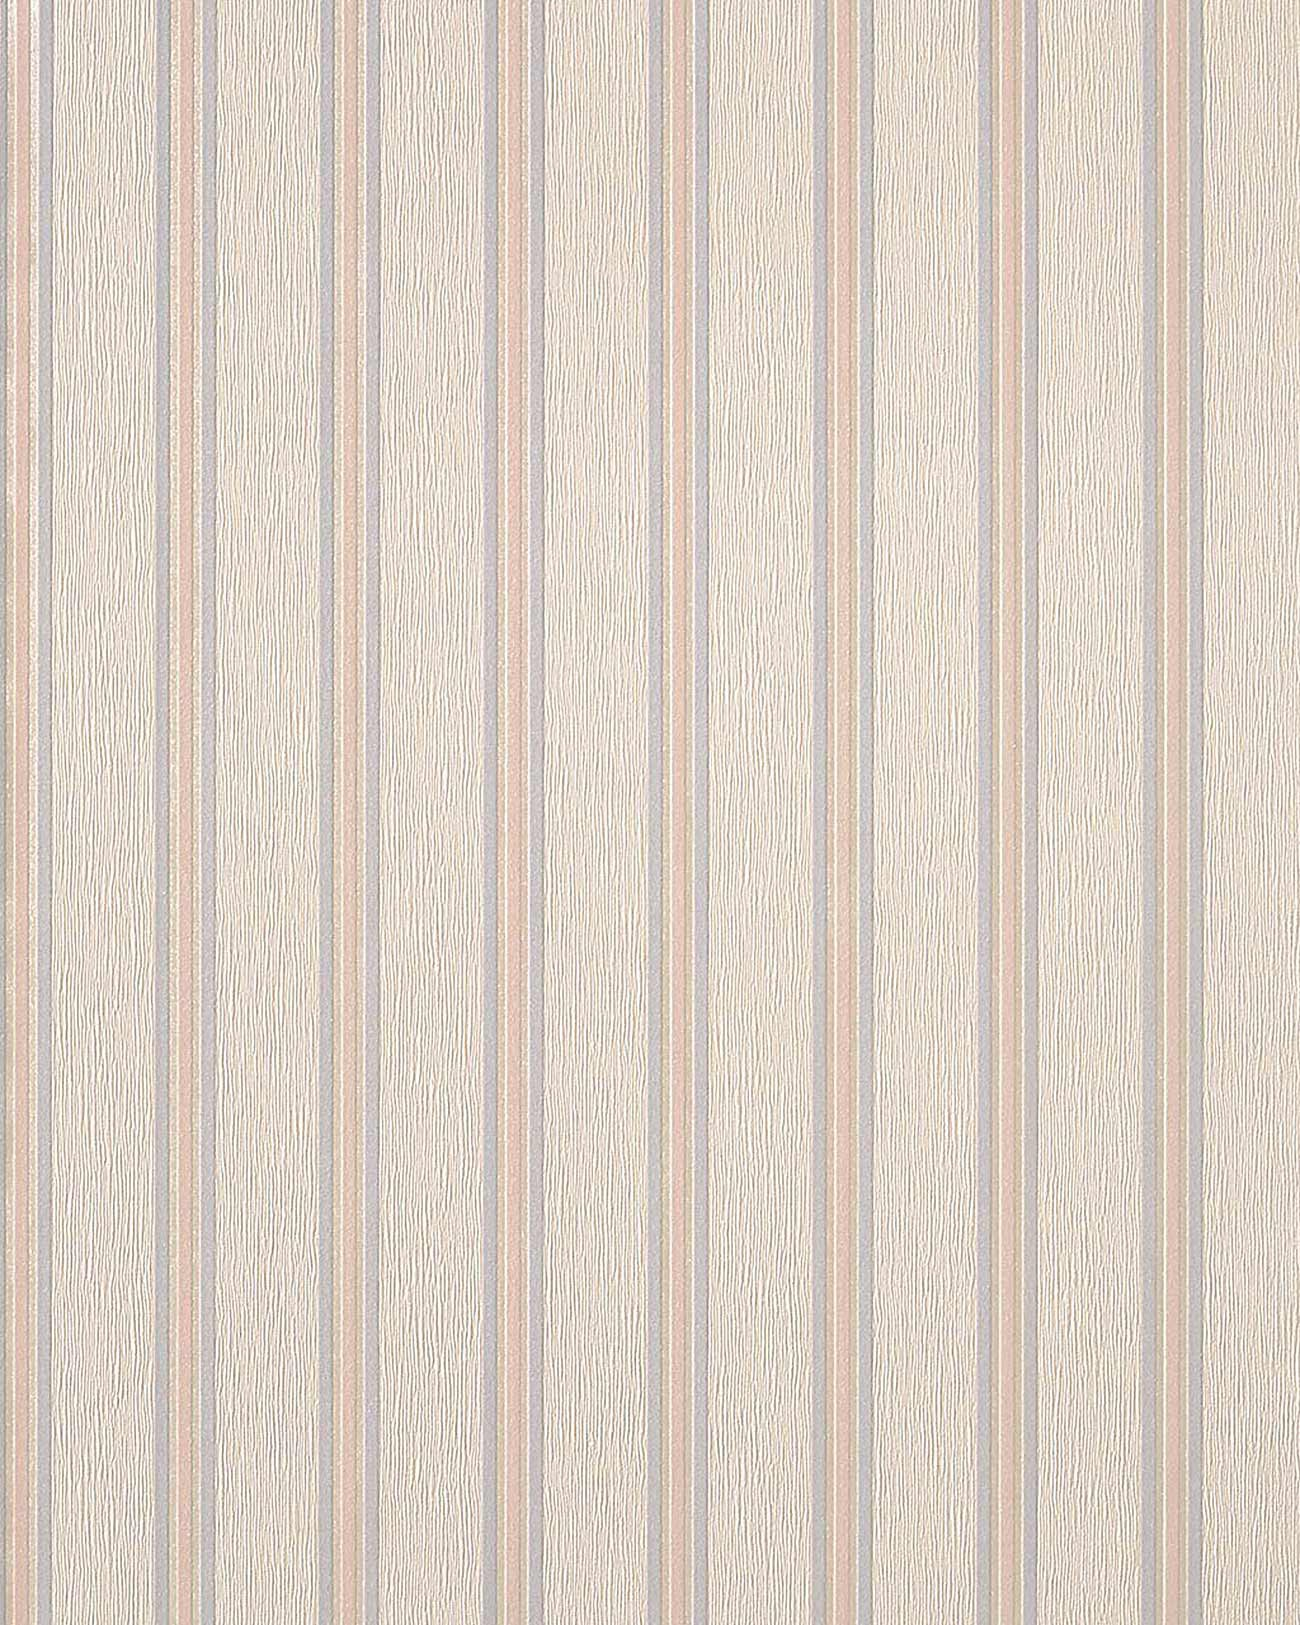 Edem 112 33 stilvolle design streifen tapete beige creme for Tapete beige